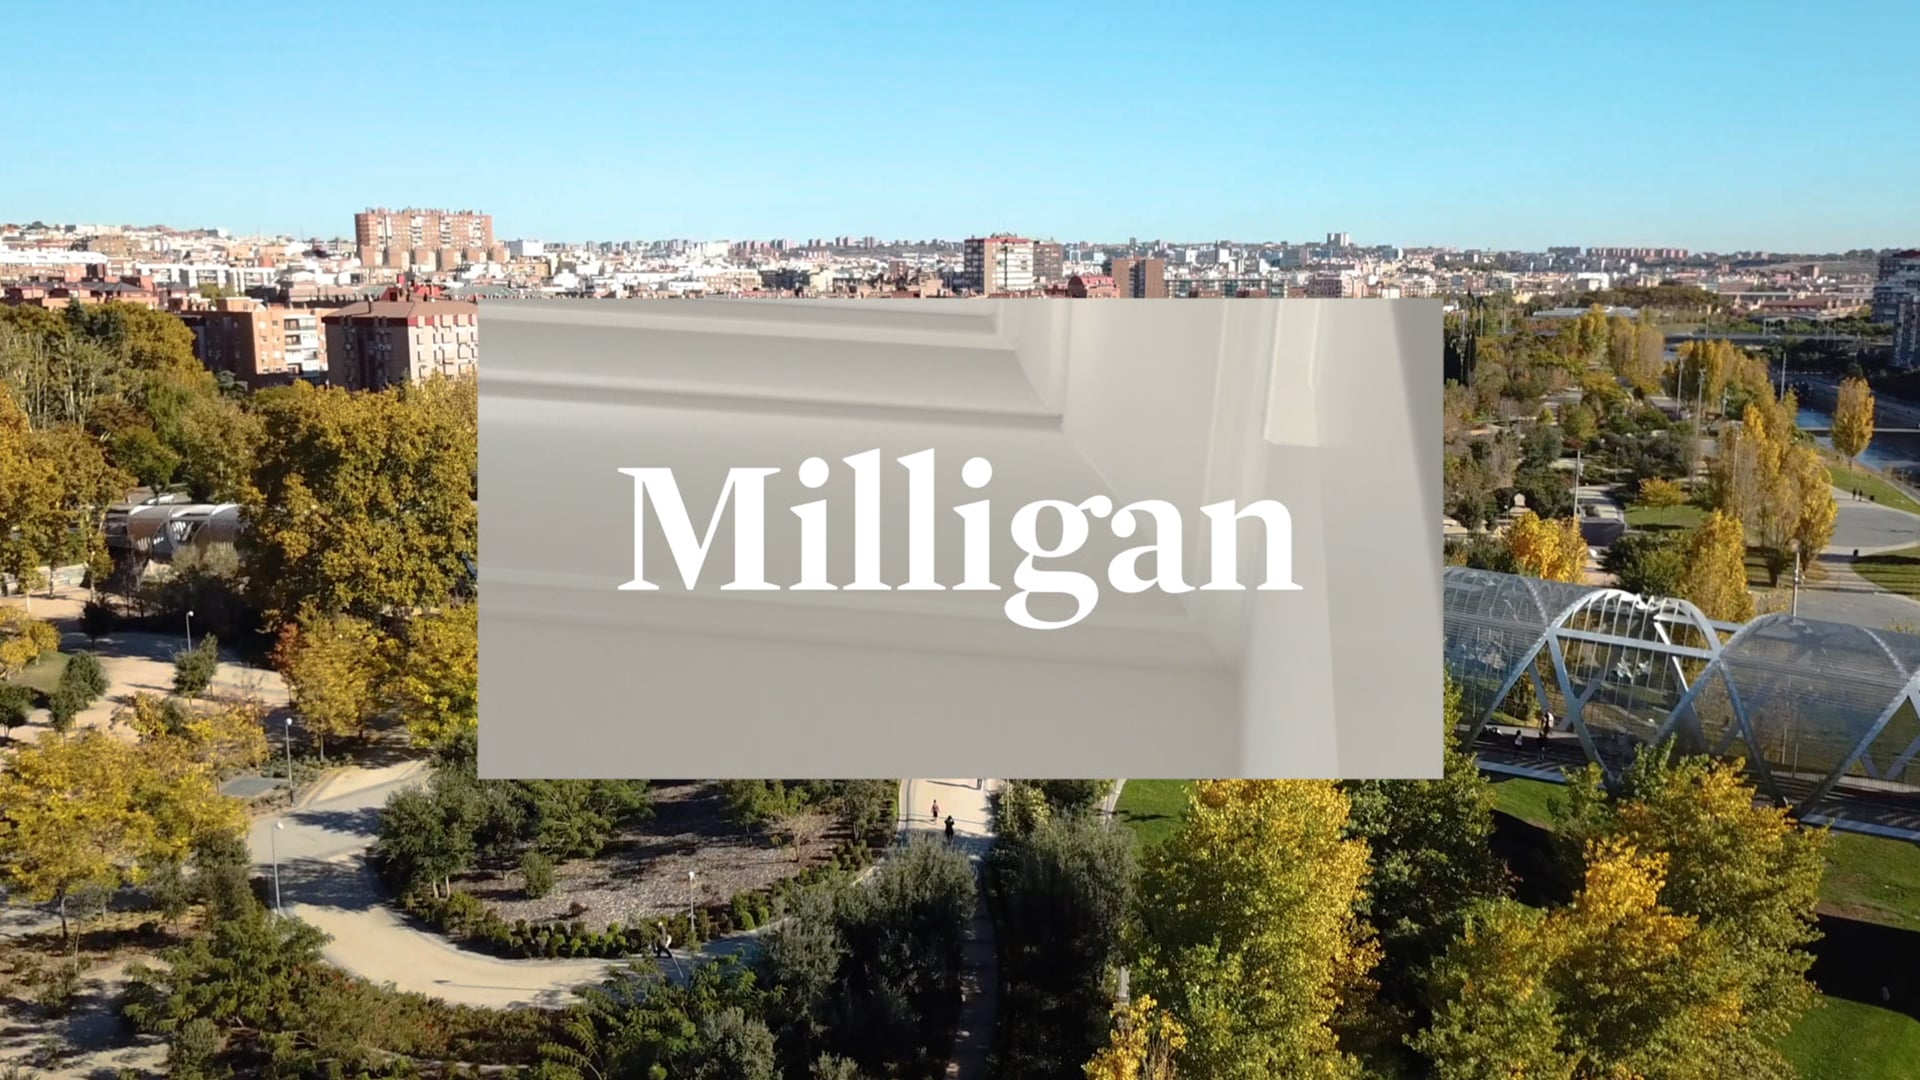 Milligan: Inspiring places with heart